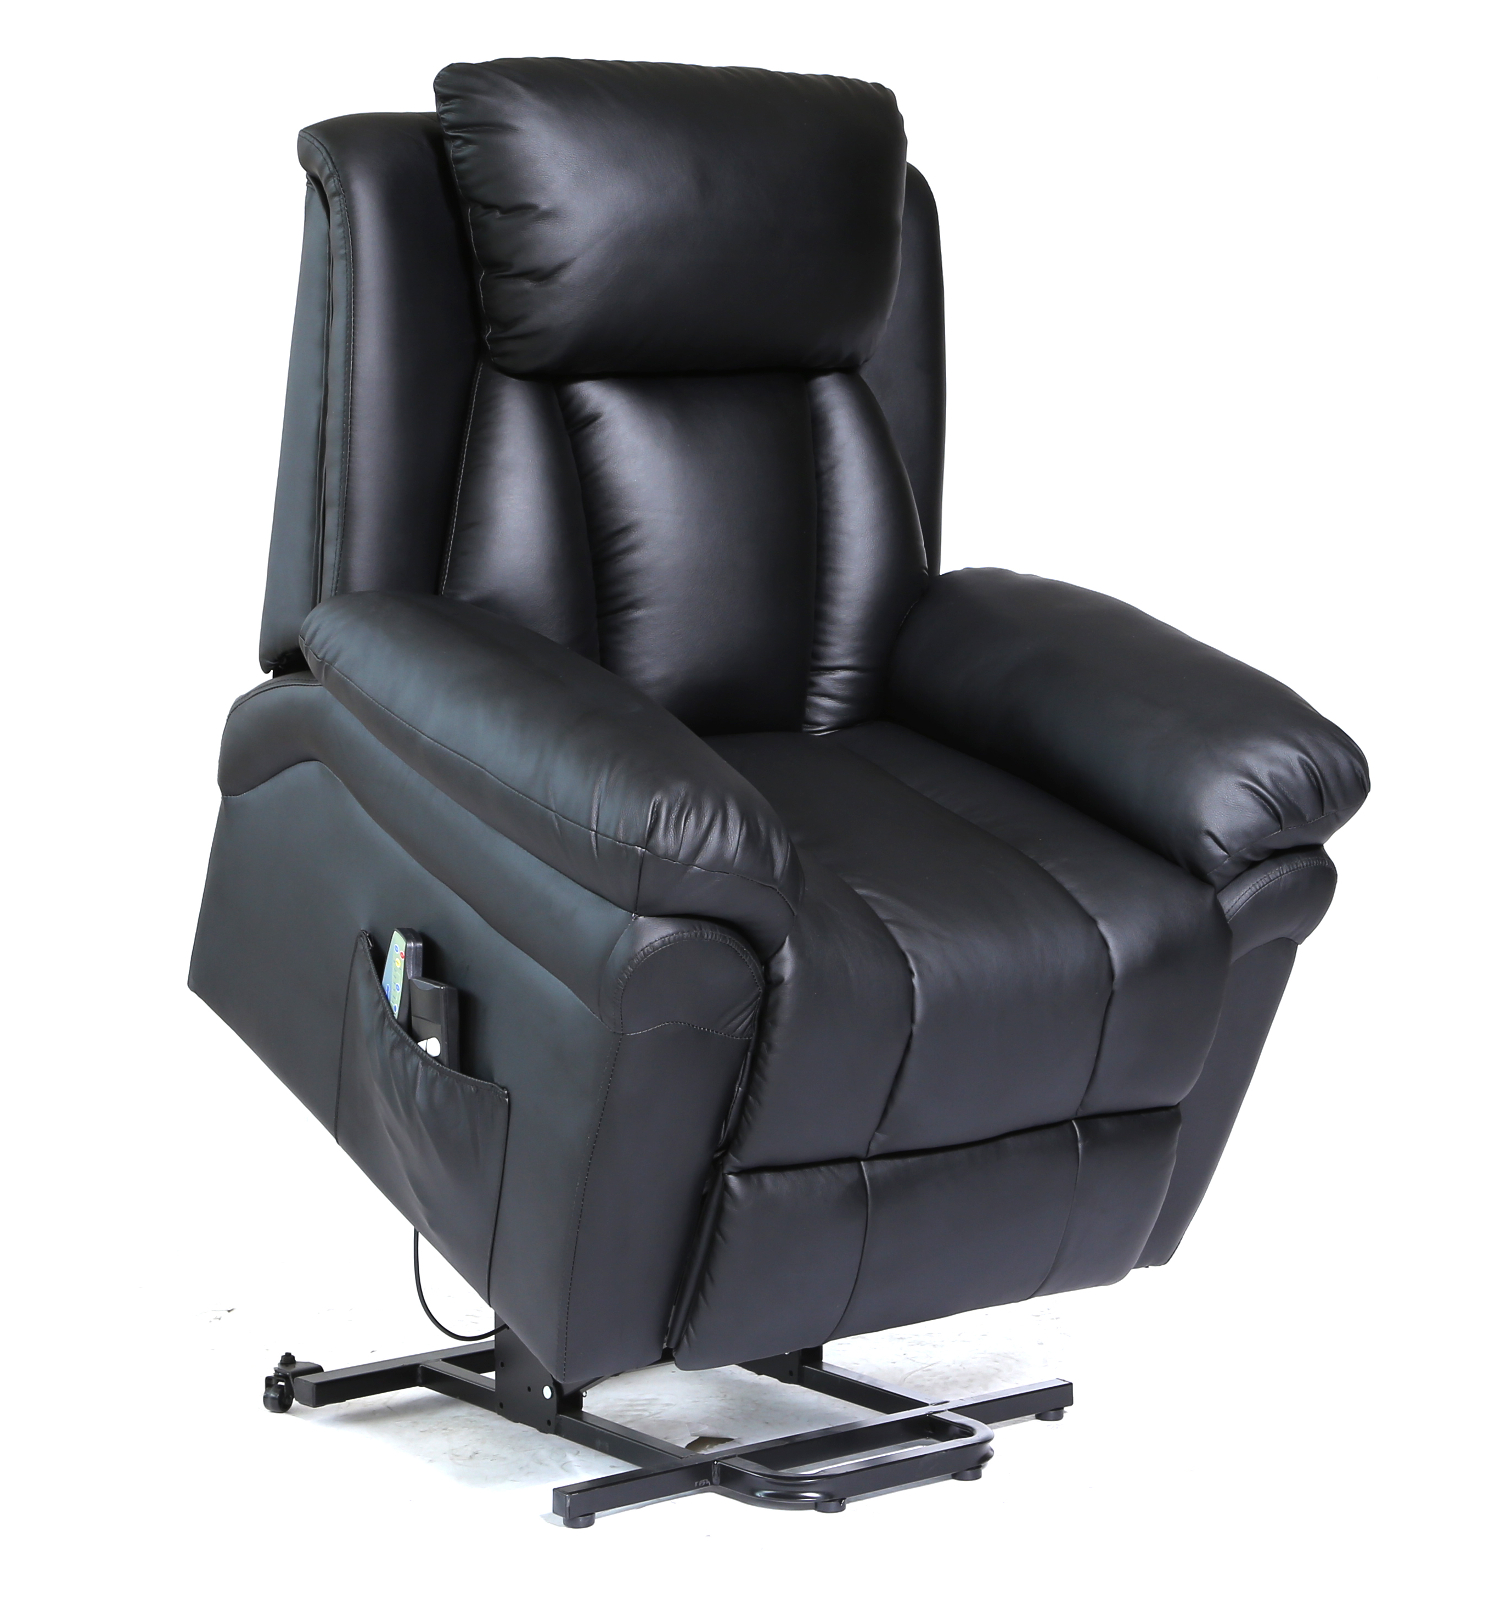 Power Lift Chair 10 In 1 Massage Recliner Swivel Chair And Power Lift